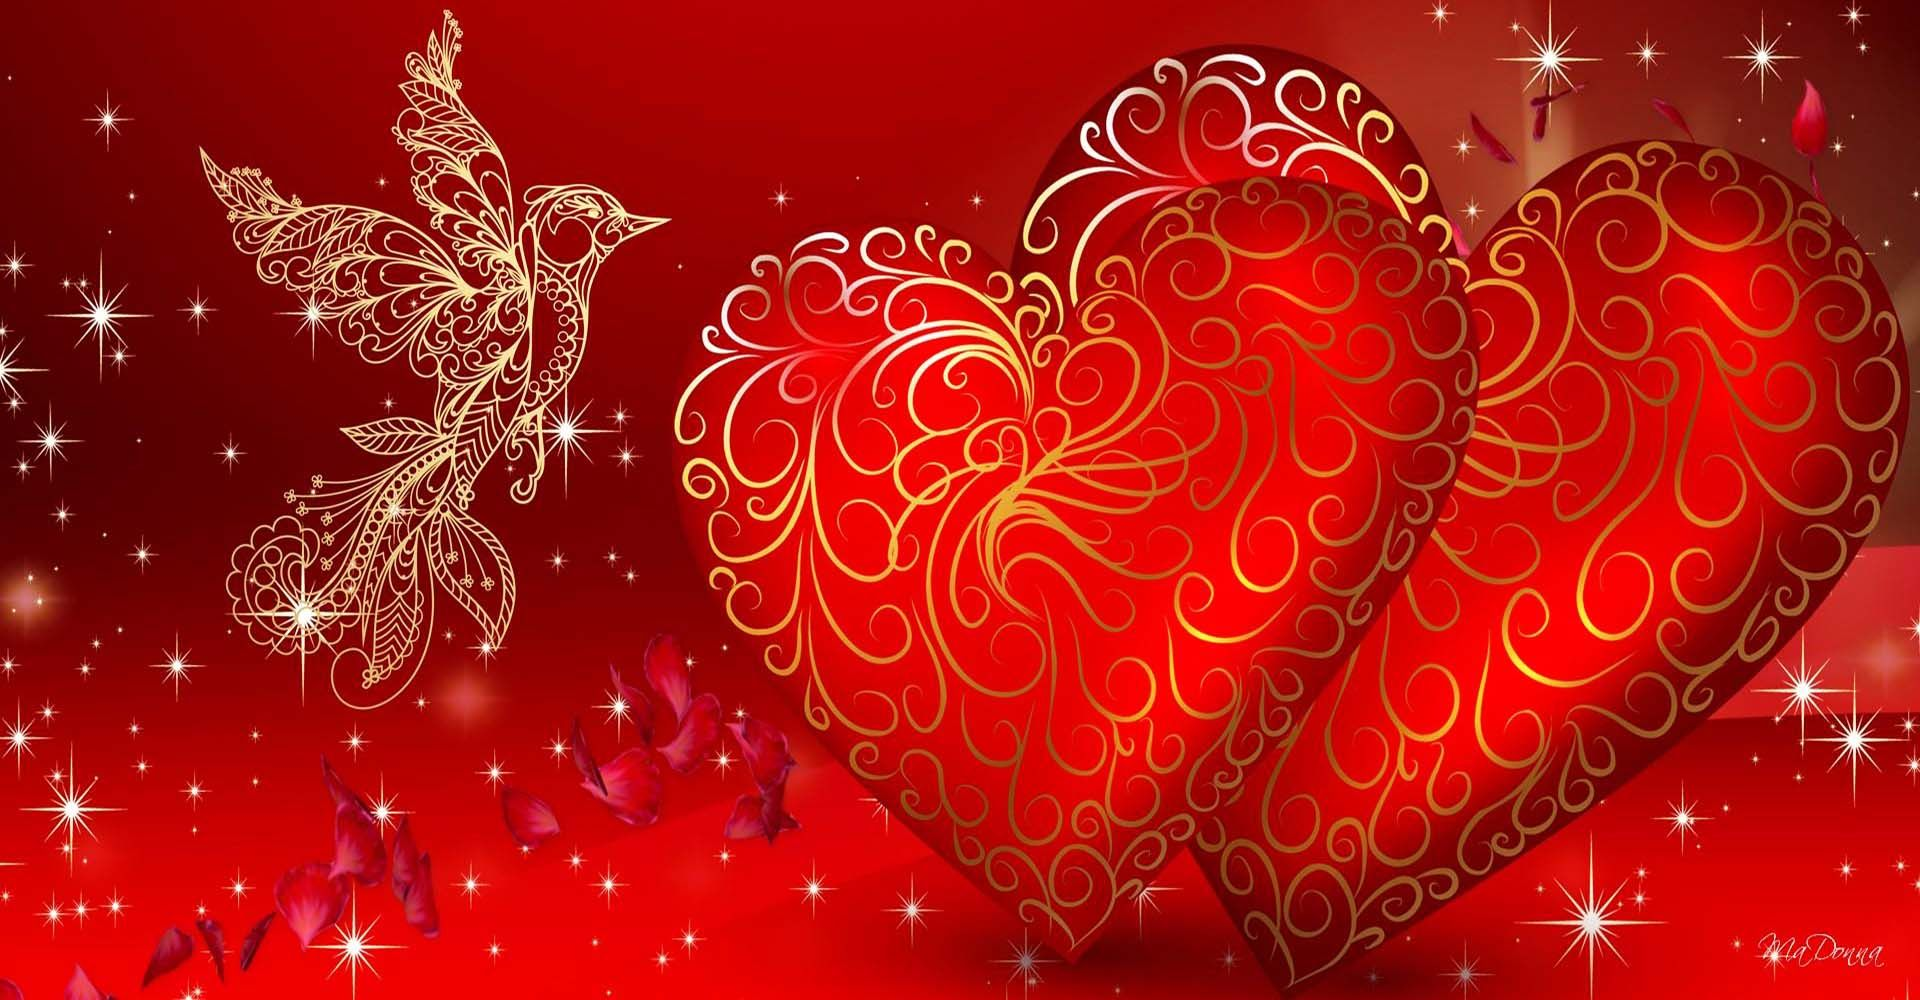 50 Love Heart Wallpapers For Great Lovers | Wallpapers | Design ...